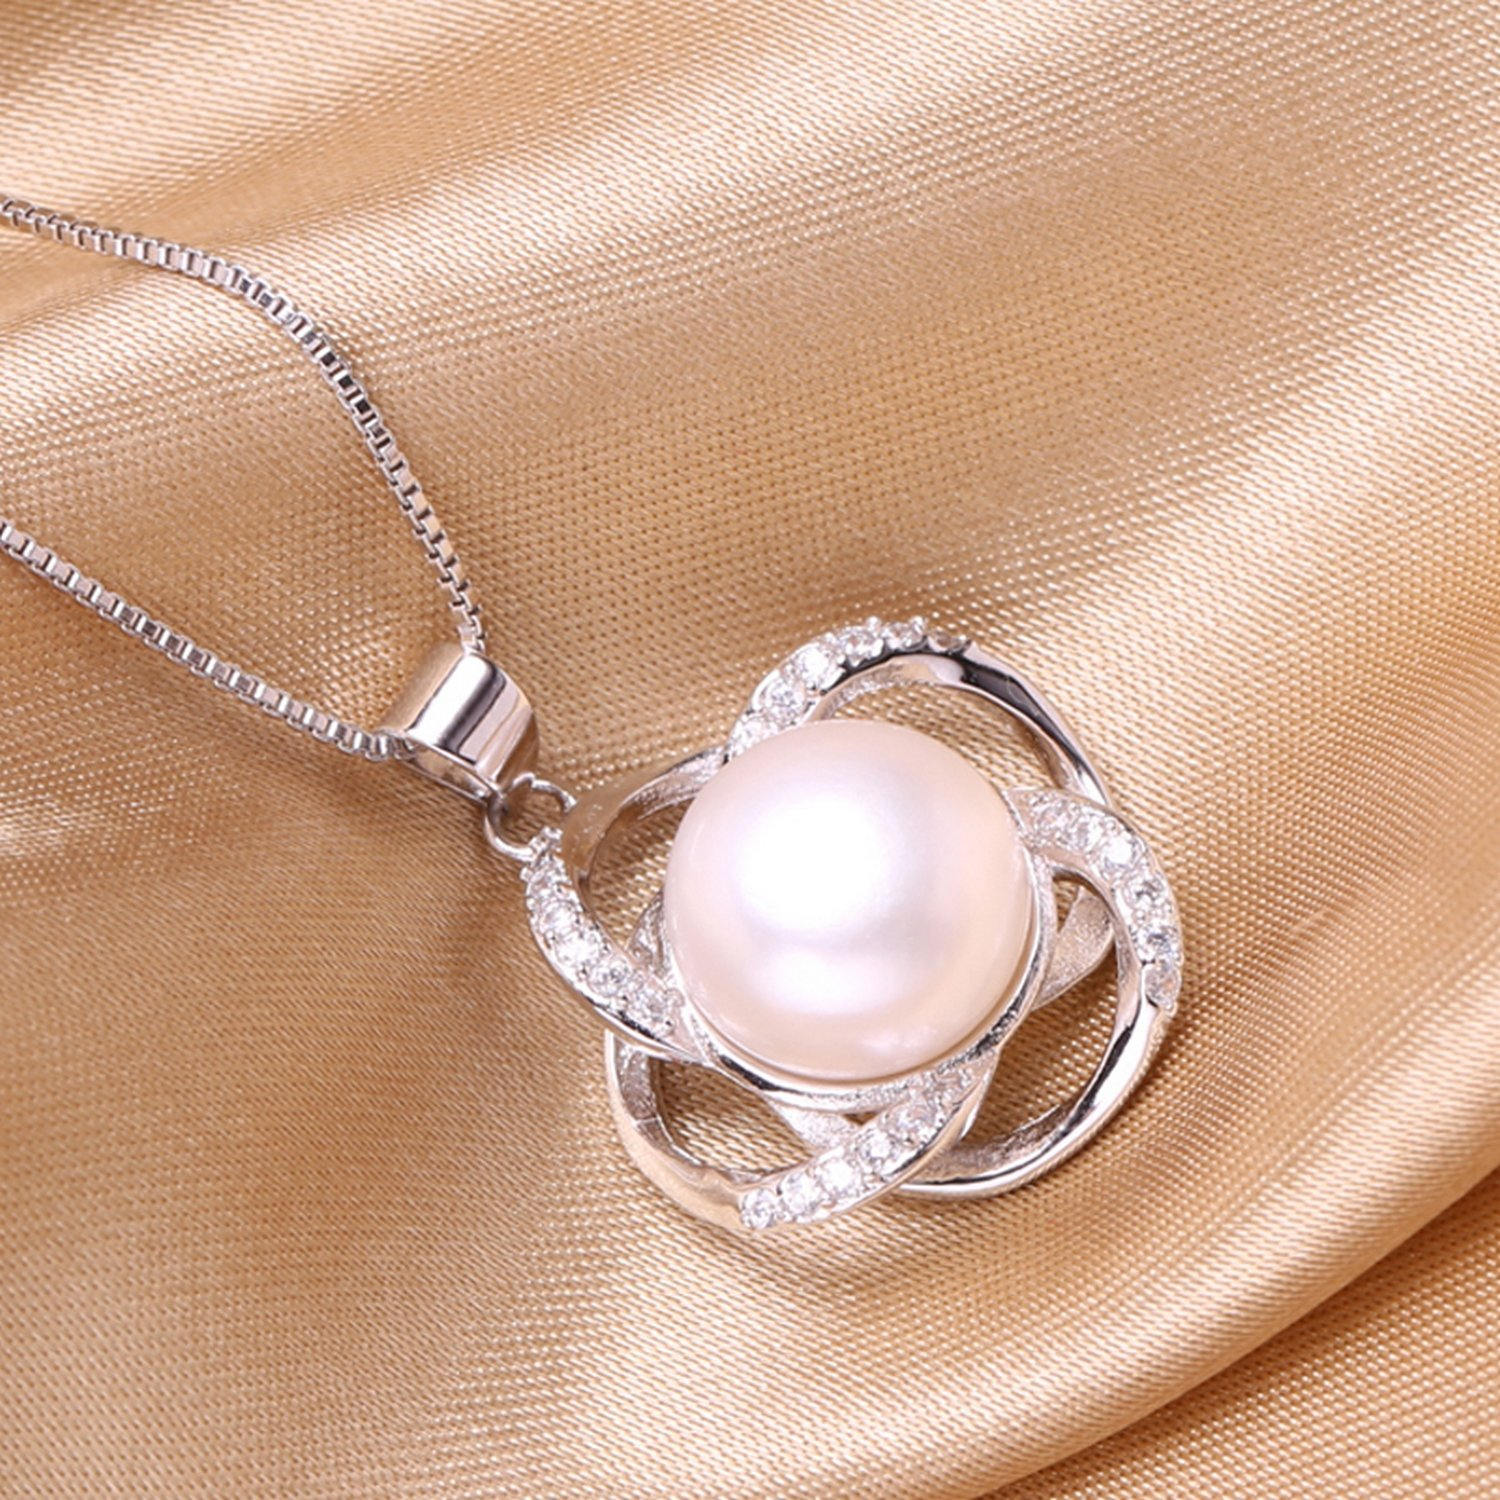 CS-DB Jewelry Silver 3D Flower Design Pearl Chain Charm Pendants Necklaces